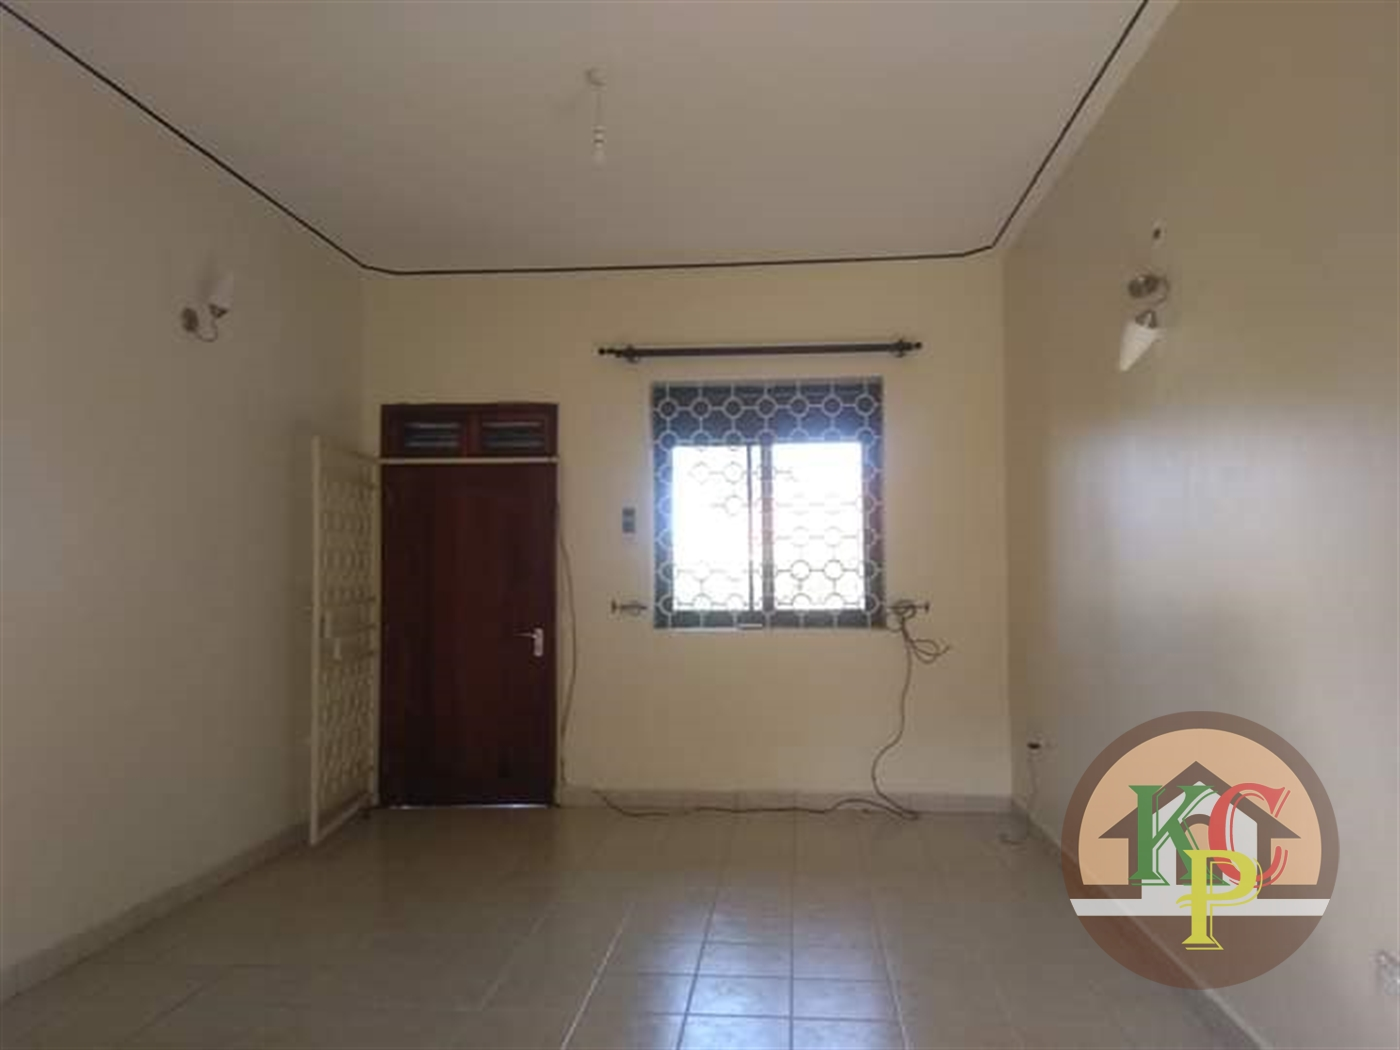 Apartment for rent in Kyambogo Kampala